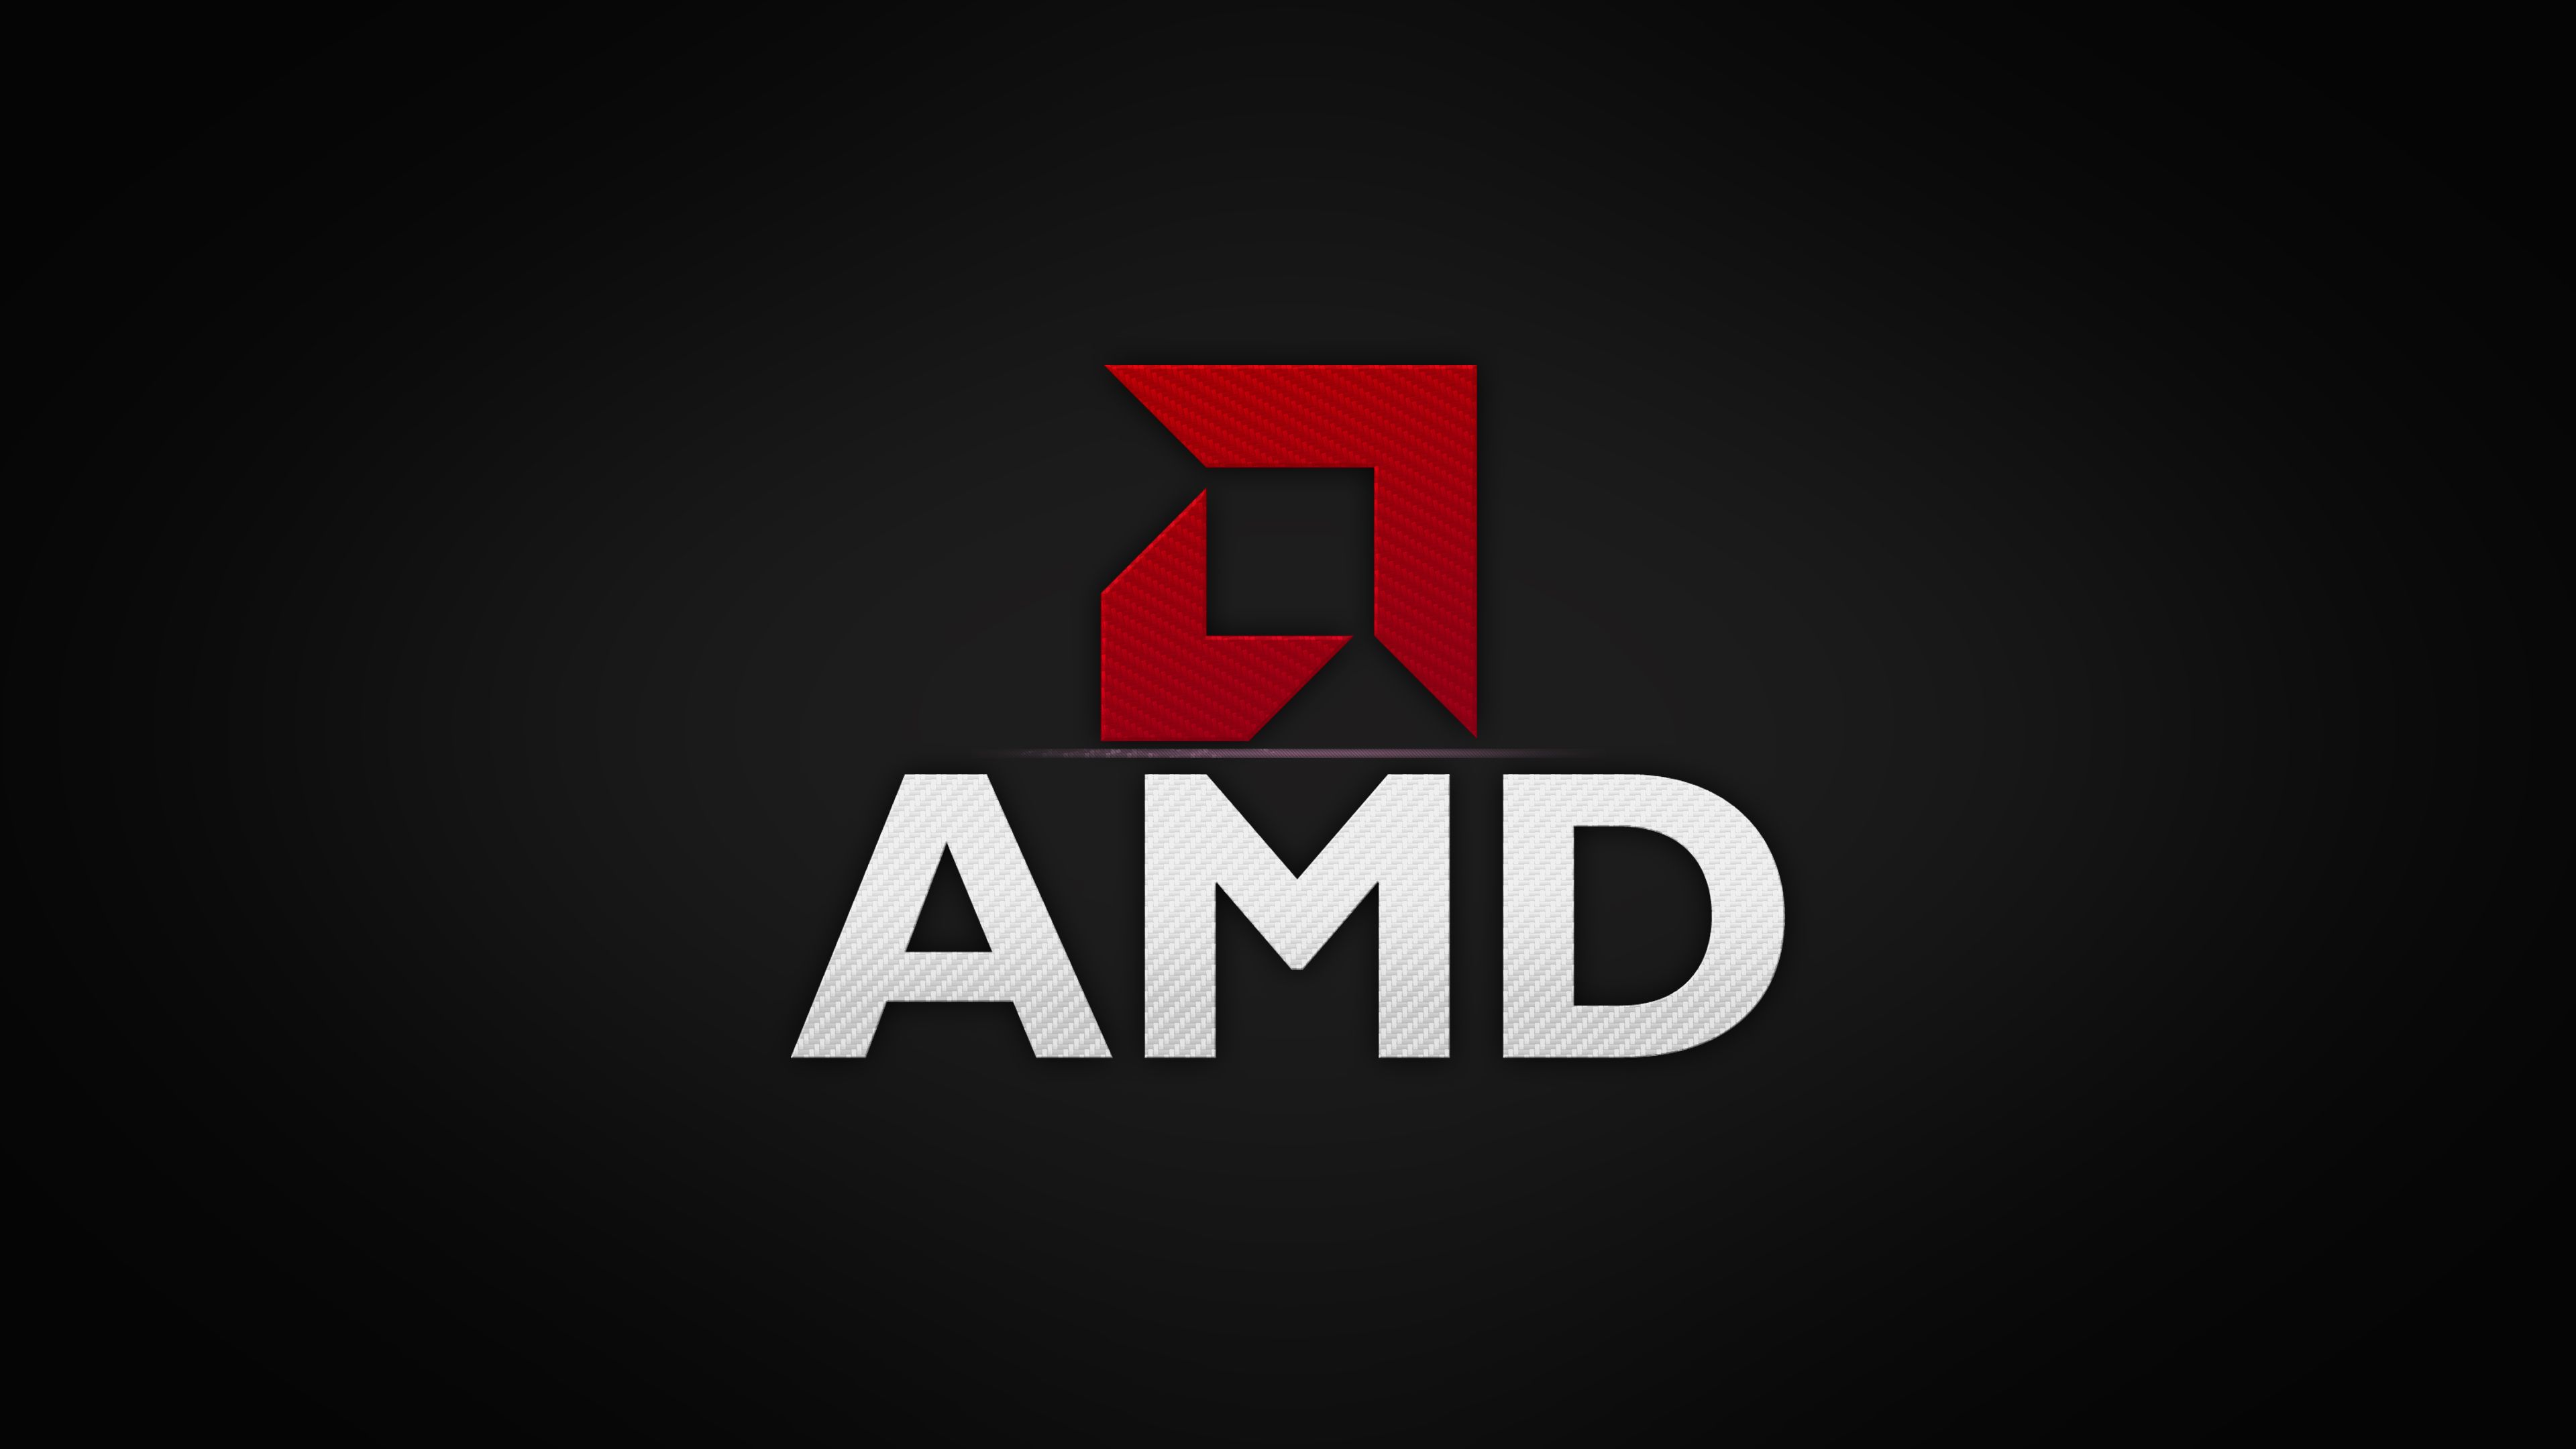 Amd Wallpapers Top Free Amd Backgrounds Wallpaperaccess